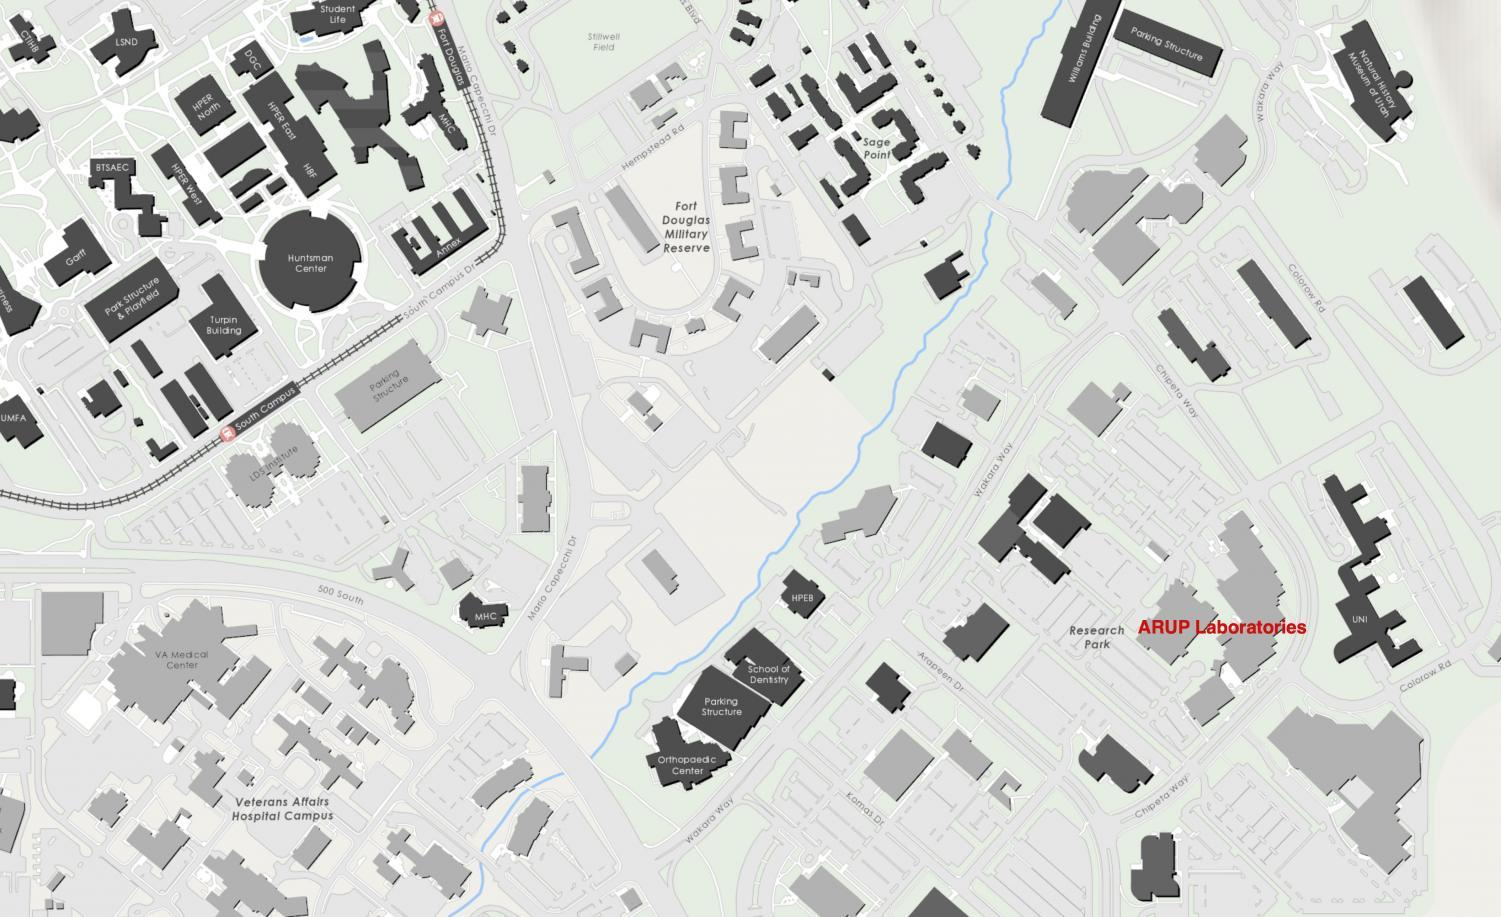 Location of ARUP Laboratories on Campus Map